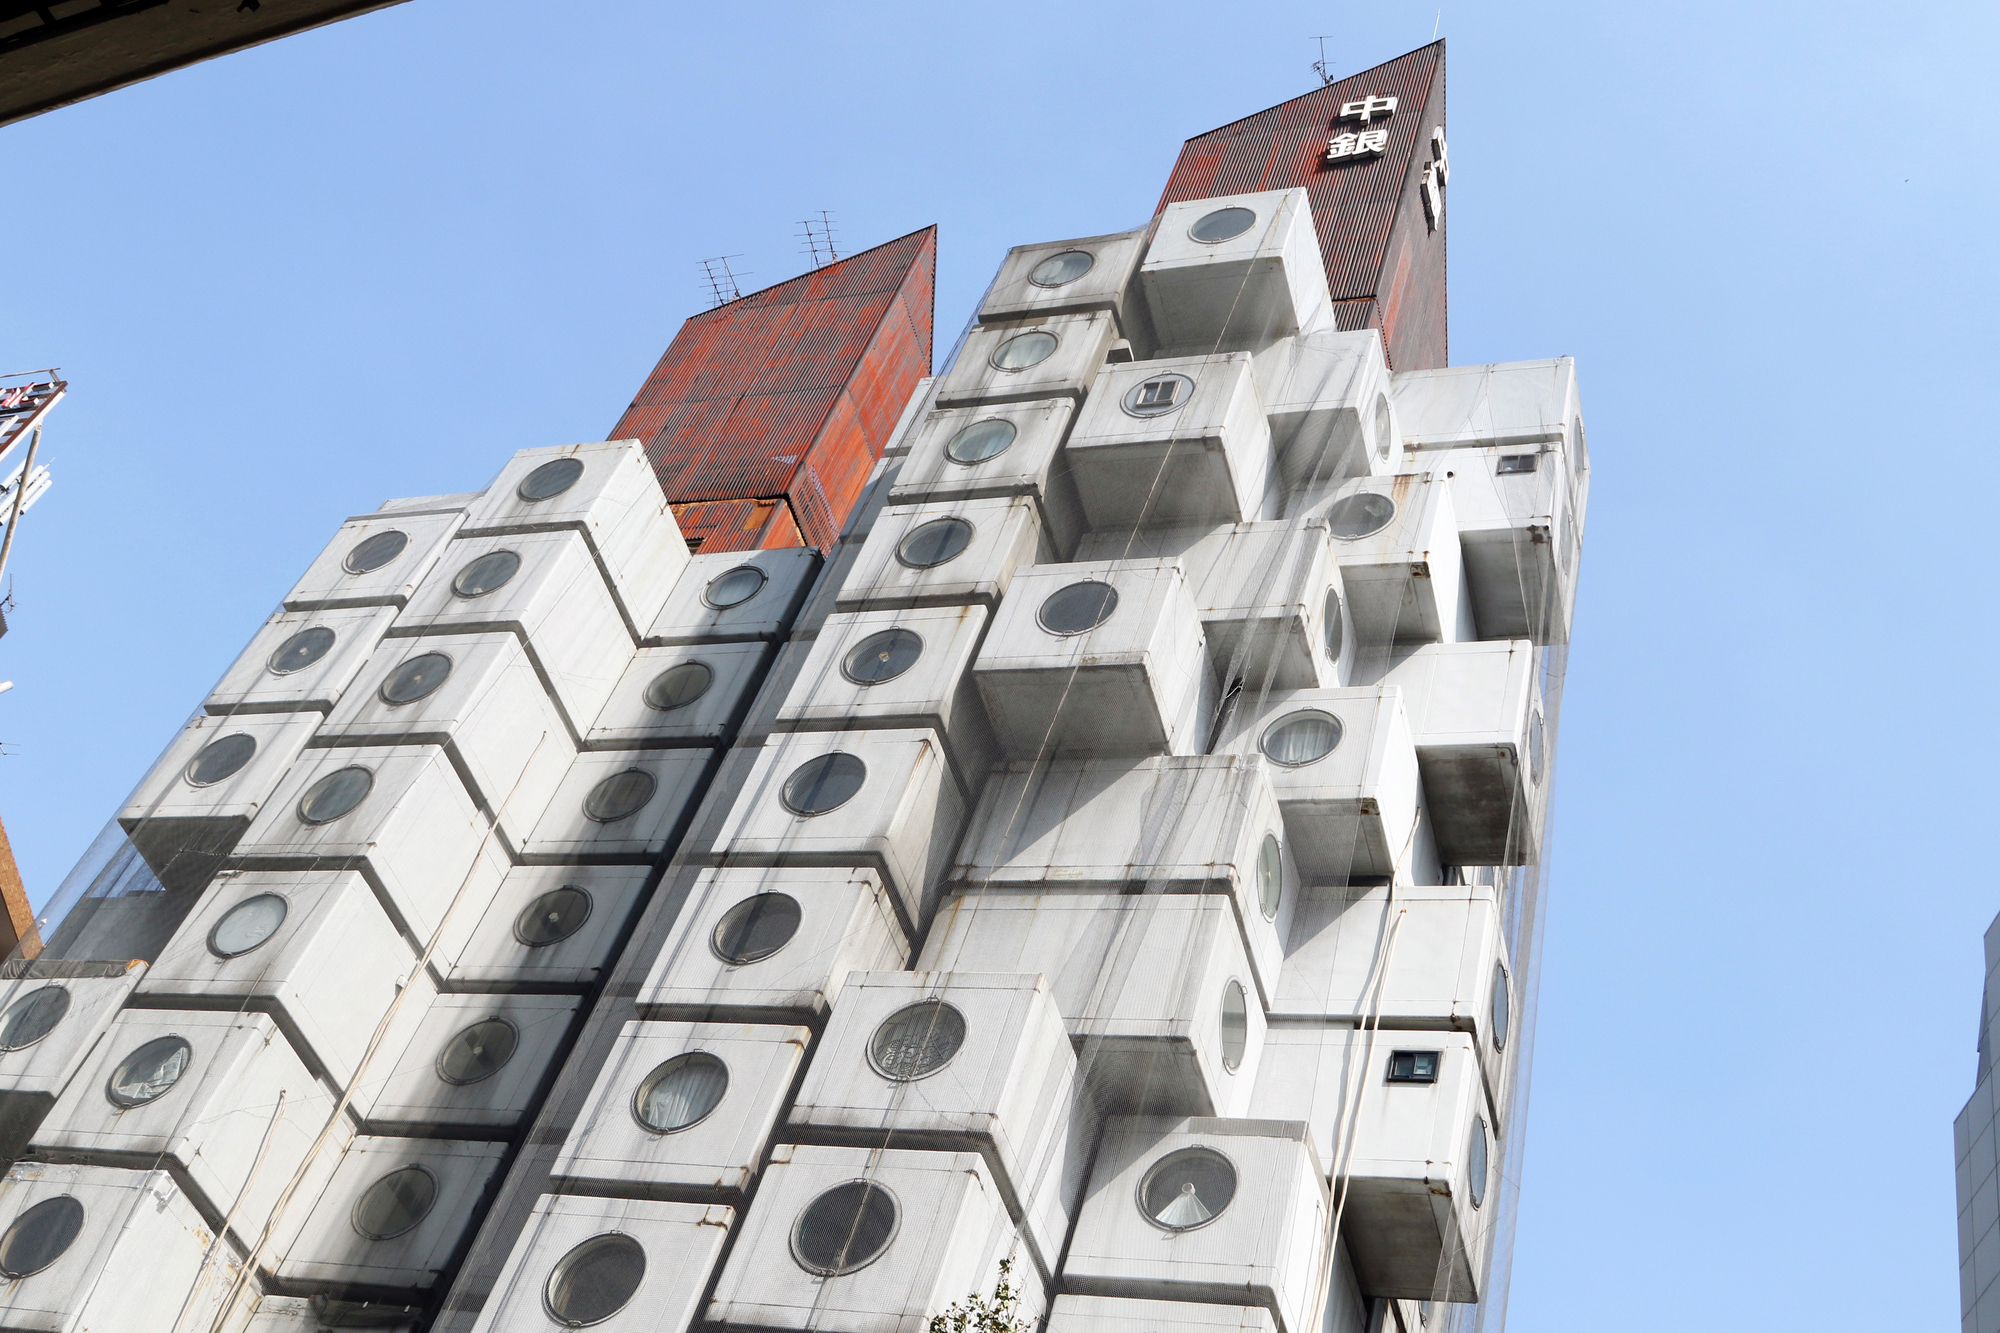 Nakagin Capsule Tower Could Face Demolition